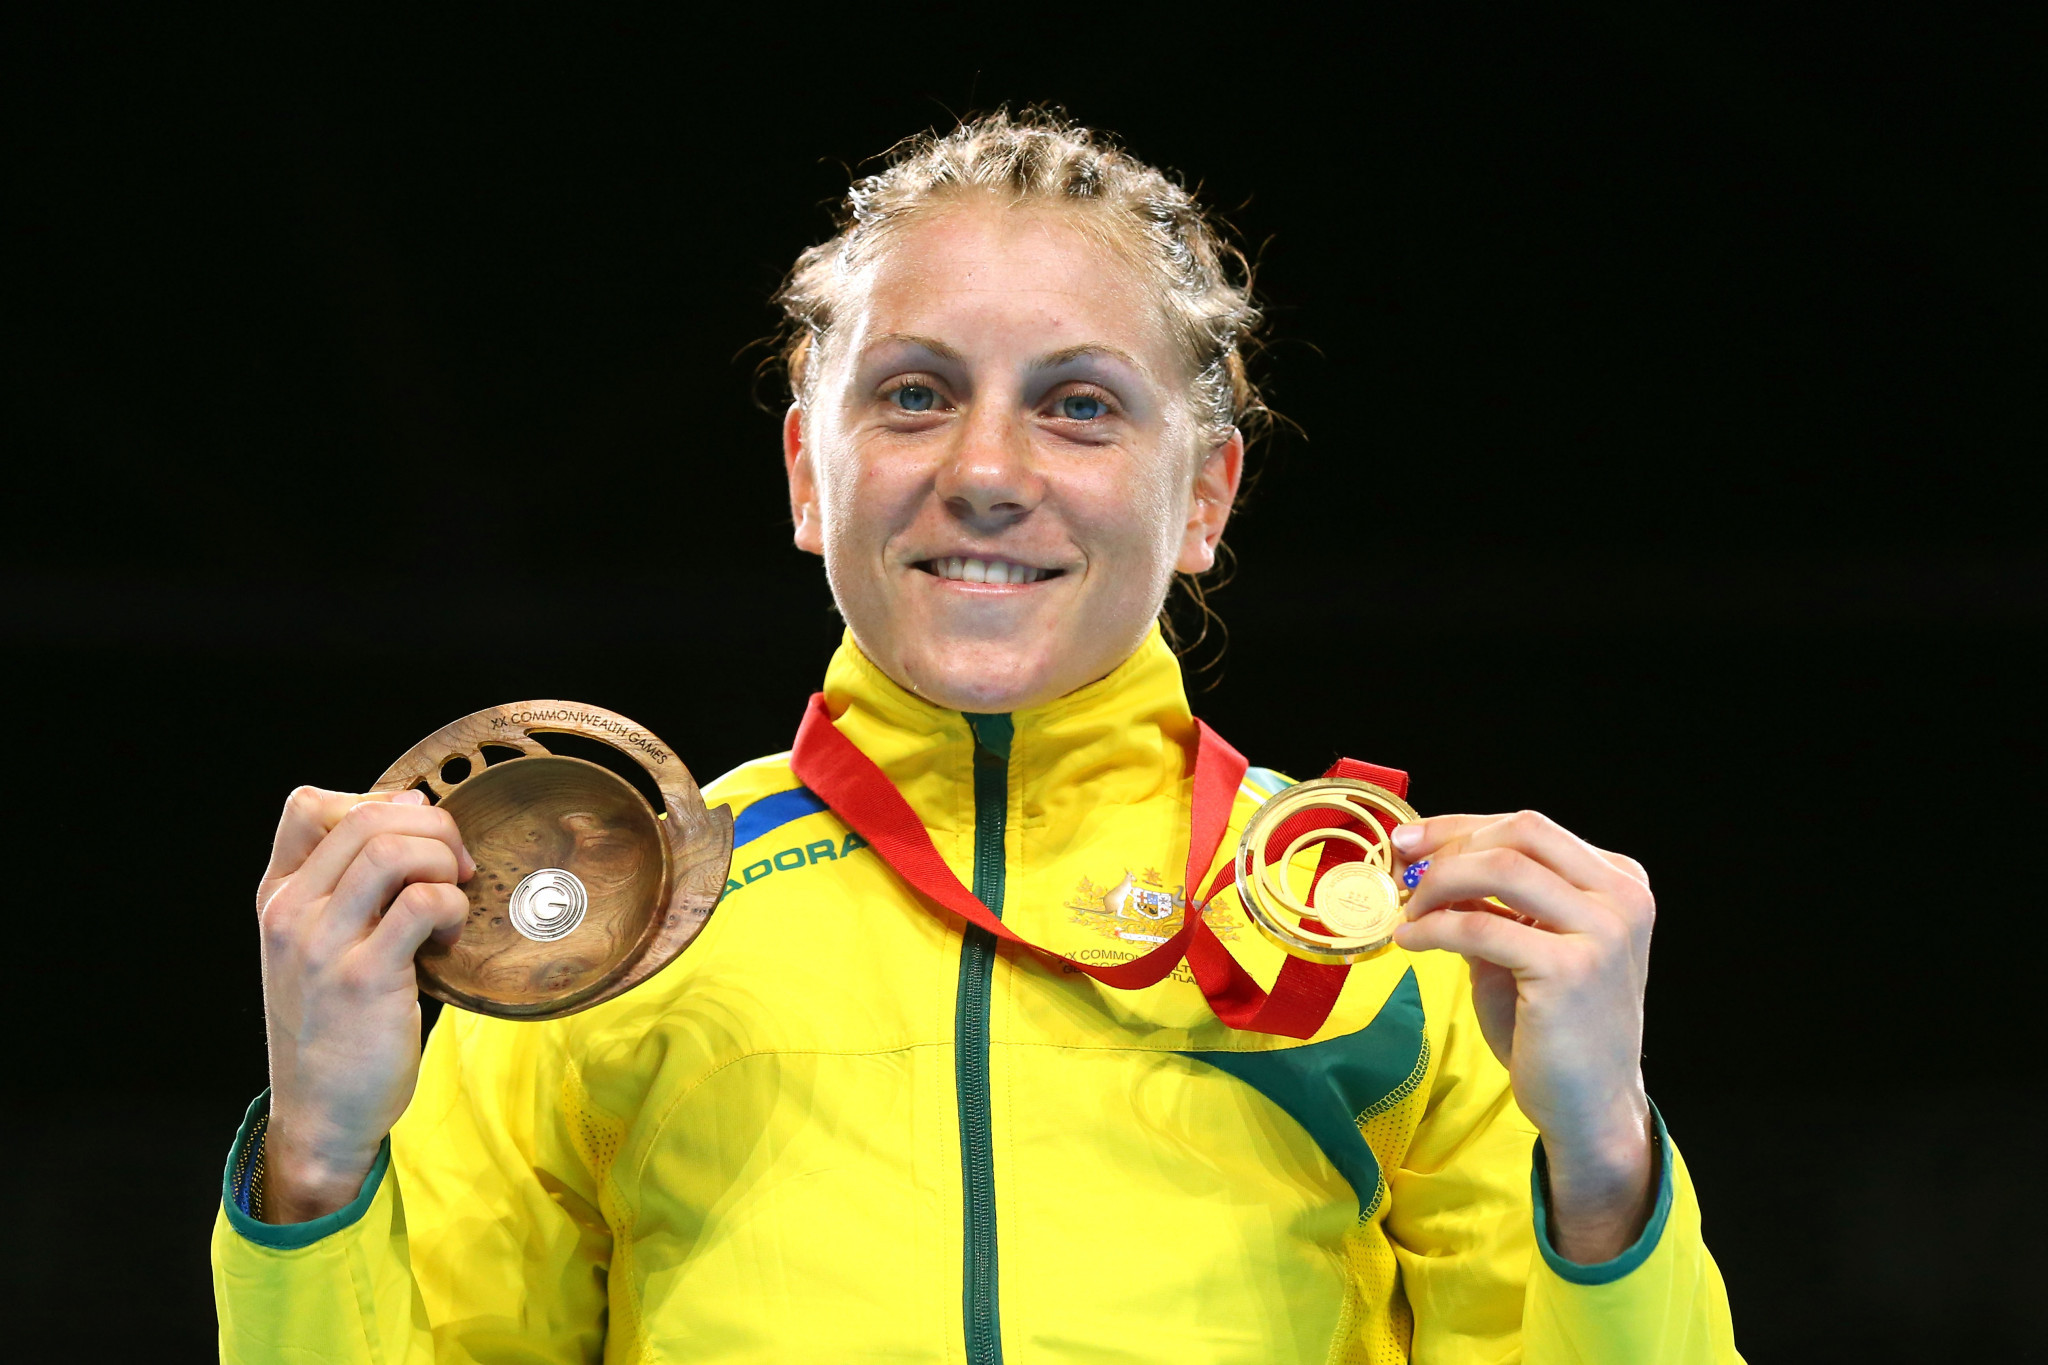 Watts joins Adams and Marshall as defending Commonwealth Games boxing champions missing Gold Coast 2018